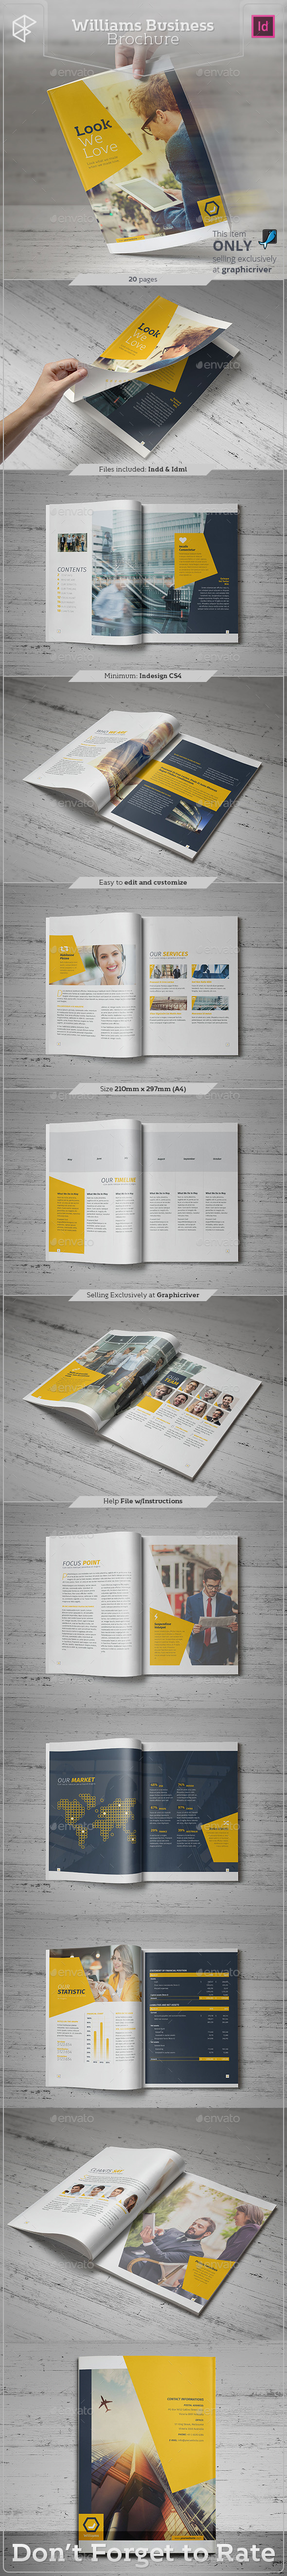 Williams Business Brochure - Corporate Brochures